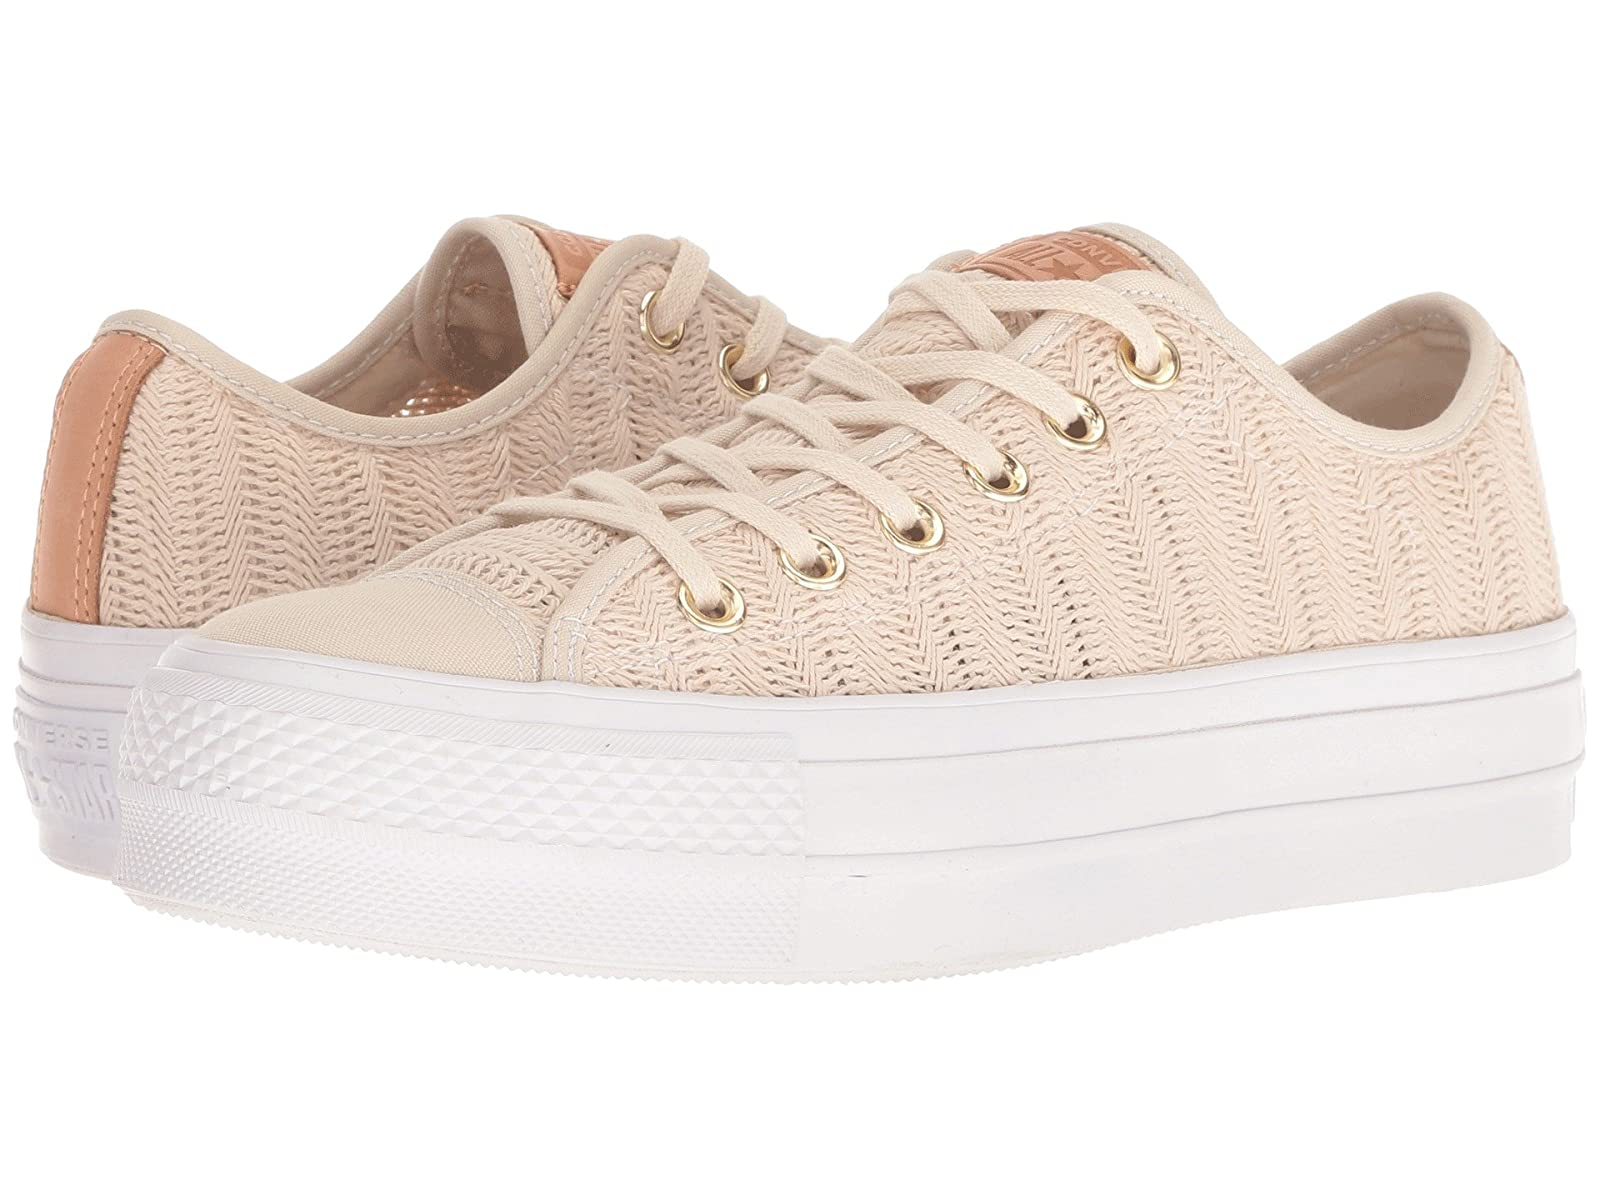 Converse Chuck Taylor® All Star® Lift Ox - Herringbone MeshCheap and distinctive eye-catching shoes